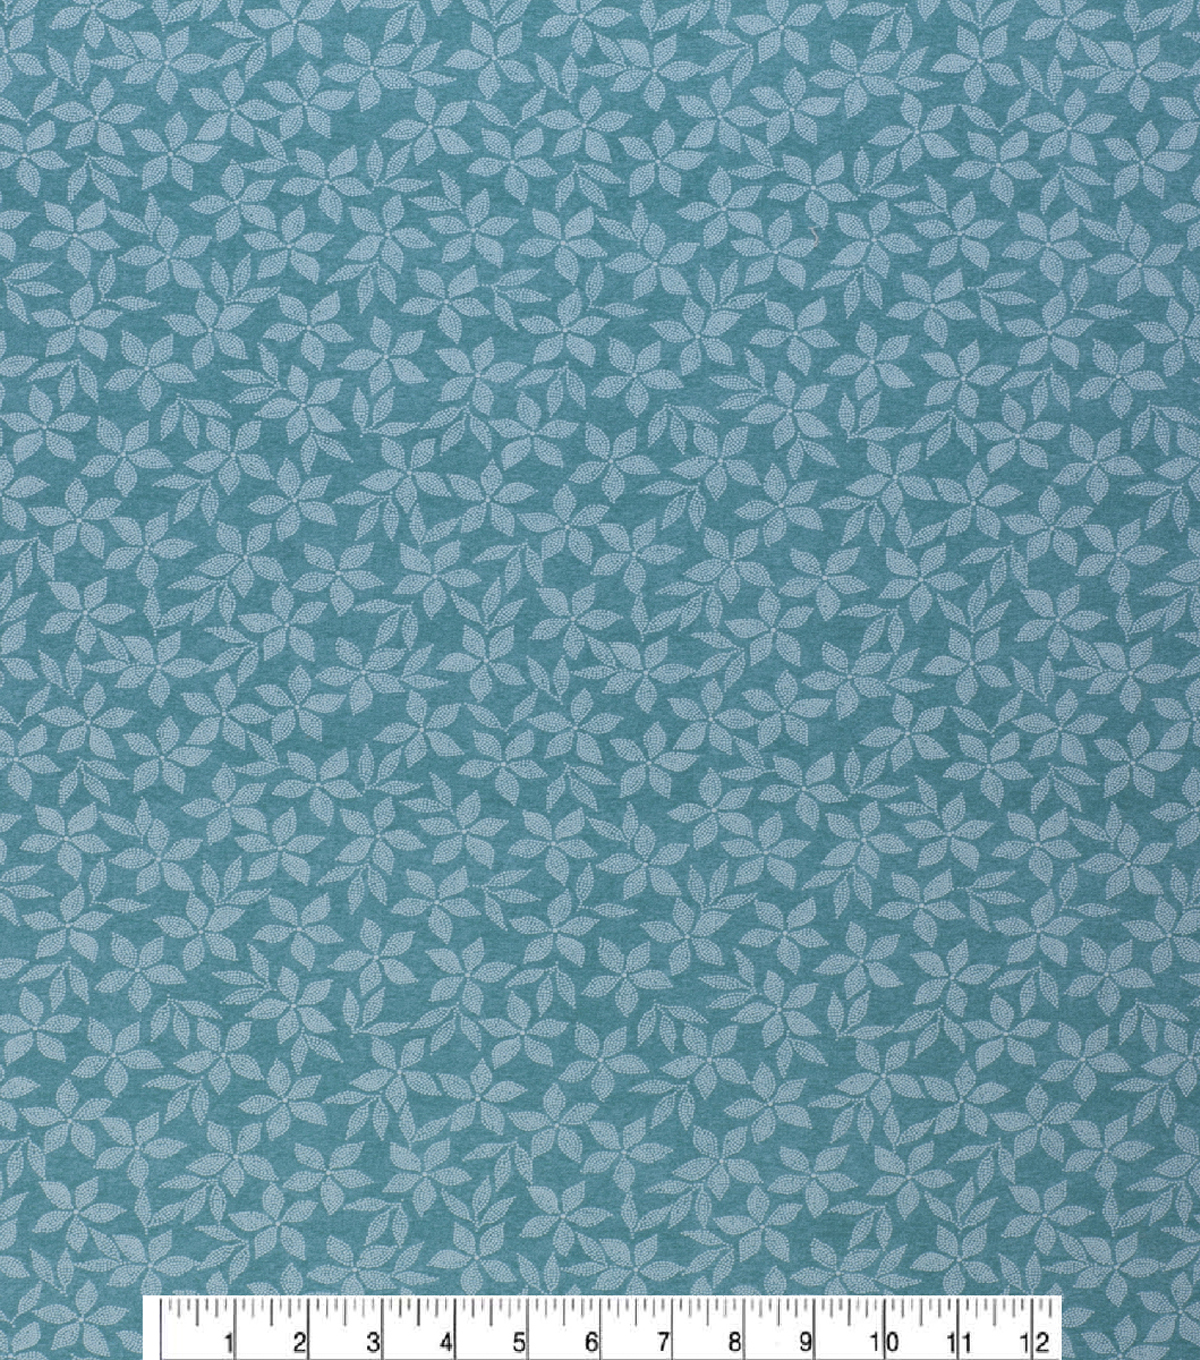 Keepsake Calico Cotton Fabric-Teal Dots & Flowers